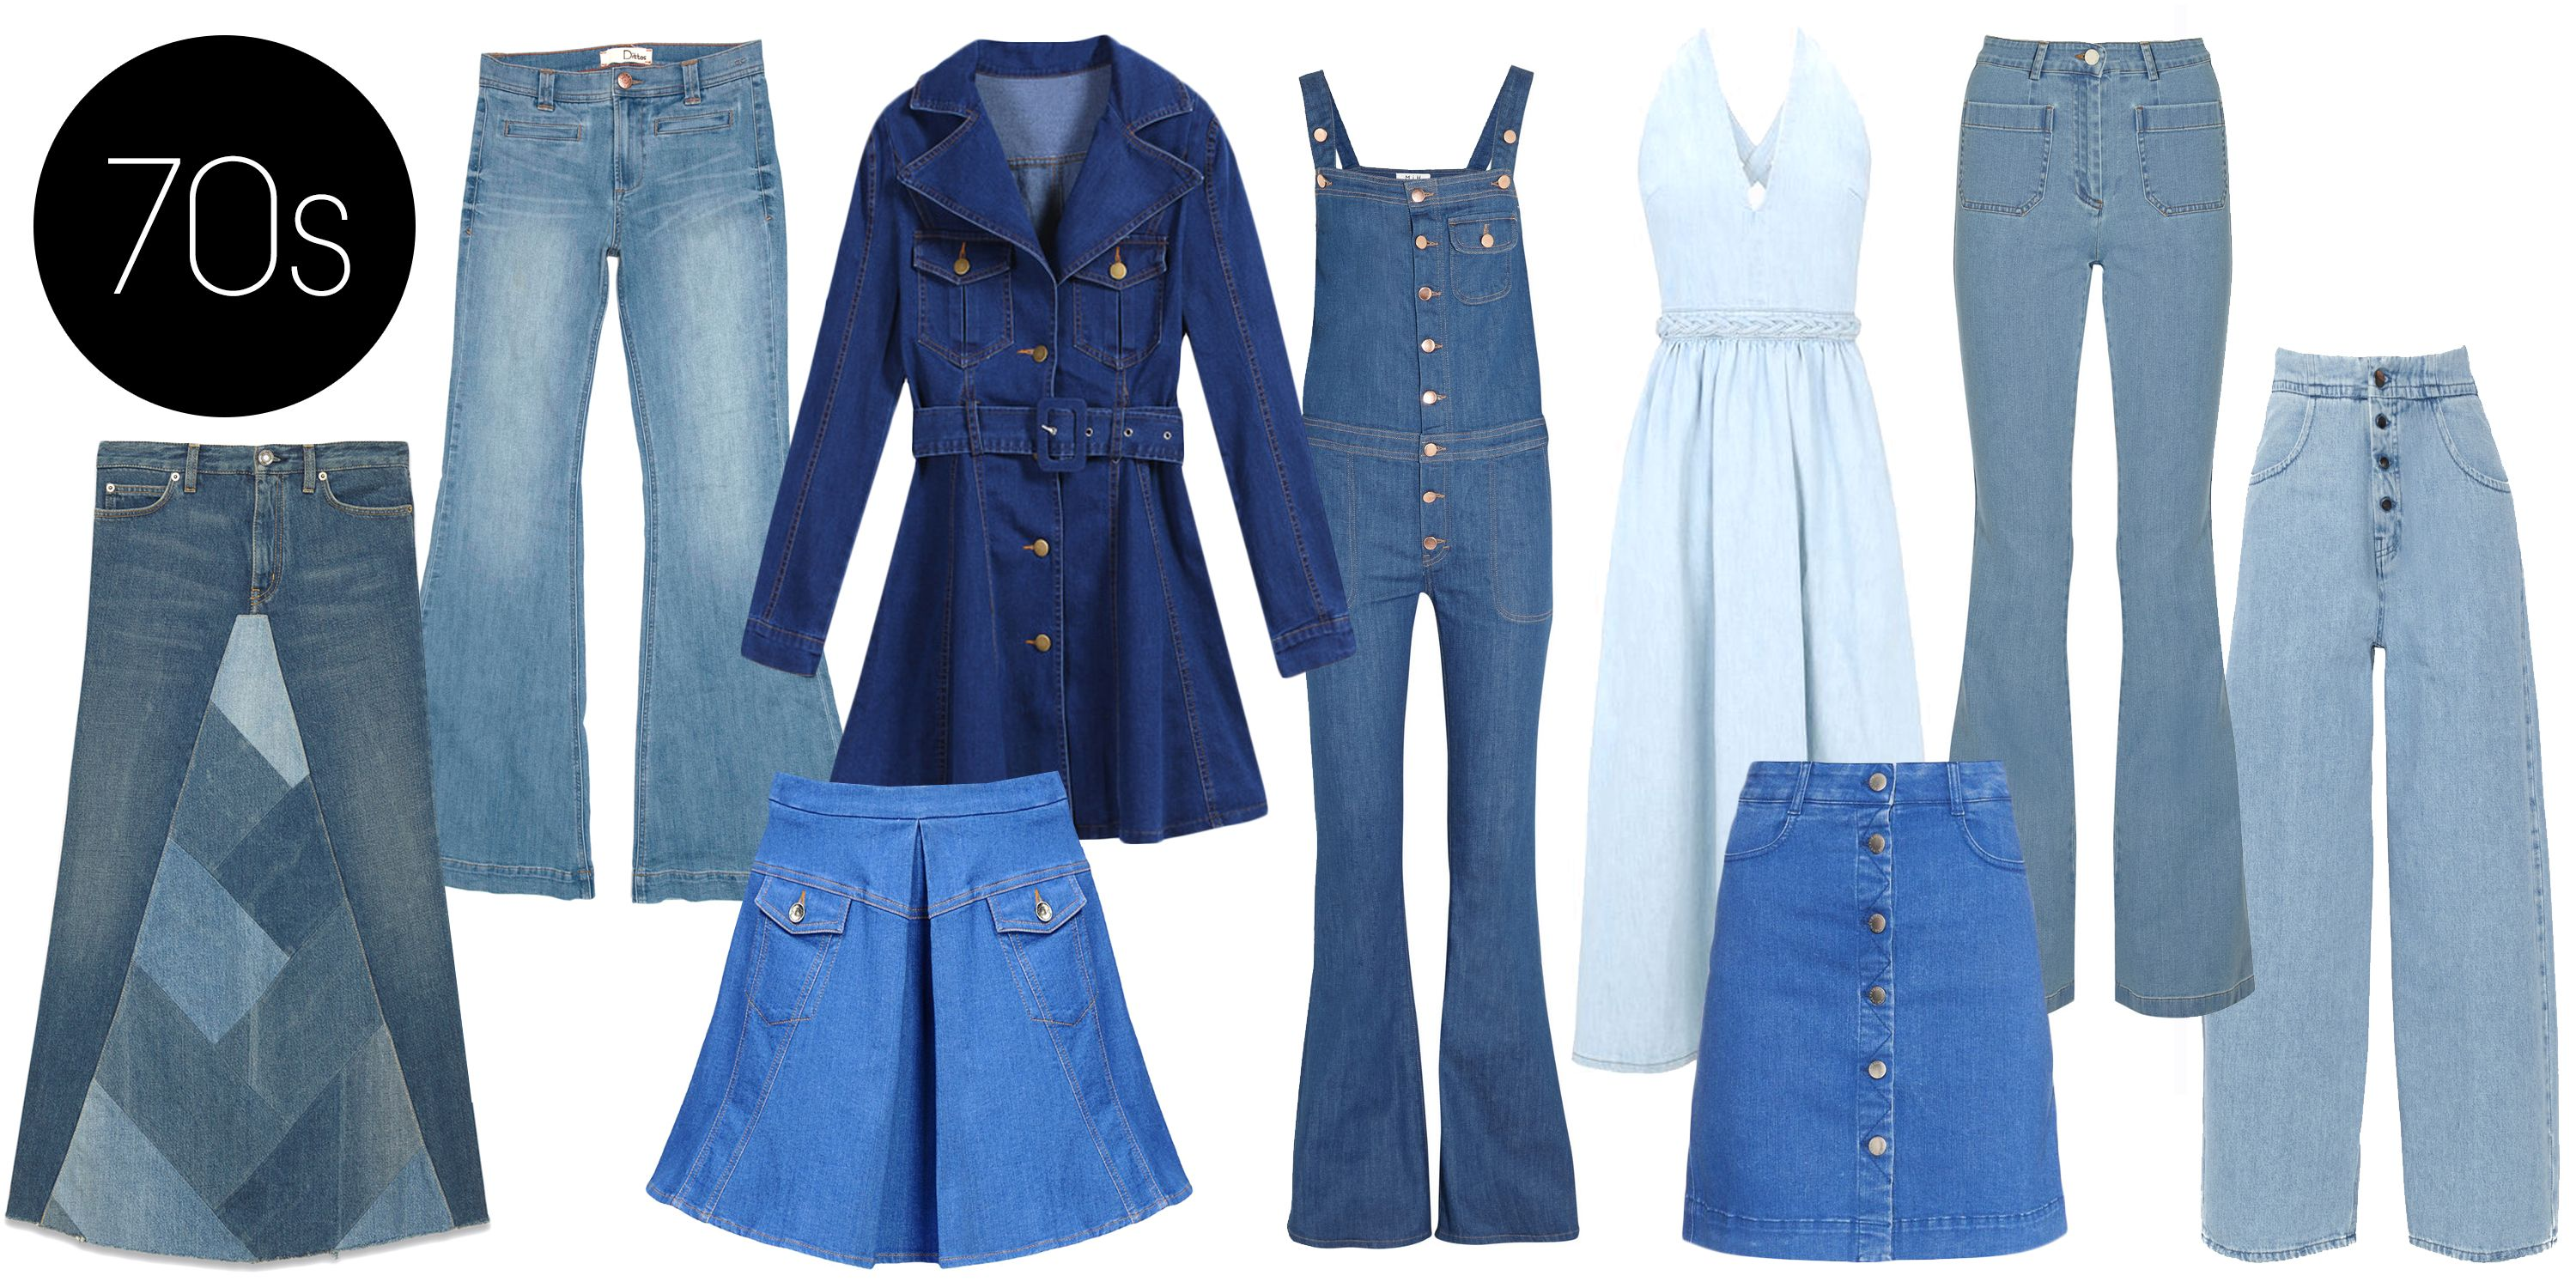 "<p>Bell-bottoms and silhouettes emphasizing the waist ran as freely as Woodstock attendees in the mud. Eventually these denim styles faded out due to the production and preference of polyester clothing.</p> <p>Romwe Denim Dress, $24; <a href=""http://www.romwe.com/Lapel-Belt-Pockets-Denim-Dress-p-100302-cat-664.html?SASSource=cjunction"">romwe.com</a></p> <p>Valentino Denim Dress, $1690; <a href=""http://www.valentino.com/us/dresses_cod34461787eg.html"">valentino.com</a></p> <p>MIH Jeans The Dix Stretch-denim Flared Overalls, $335; <a href=""http://www.net-a-porter.com/us/en/product/493225"">net-a-porter.com</a></p> <p>Michael Kors High-rise Flared Jeans, $495; <a href=""http://www.net-a-porter.com/product/504108/Michael_Kors/high-rise-flared-jeans"">net-a-porter.com</a></p> <p>MM6 Maison Martin Margiela High-waisted Wide-leg Jeans, $395; <a href=""http://www.net-a-porter.com/product/519870/MM6_Maison_Martin_Margiela/high-waisted-wide-leg-jeans"">net-a-porter.com</a></p> <p>Dittos Gladys High Rise Flare Jeans, $100; <a href=""http://www.amazon.com/Dittos-Womens-Gladys-Flare-Vintage/dp/B00LFBN1HW"">amazon.com</a></p> <p>Saint Laurent A-line Patchwork Long Skirt, $1450; <a href=""http://www.ysl.com/us/shop-product/women/ready-to-wear-long-skirts-a-line-patchwork-long-skirt-in-blue-selvedge-denim_cod35236580hh.html#dept=cruise15_women_"">ysl.com</a></p> <p>Love Moschino Denim Skirt, $265; <a href=""http://www.moschino.com/us/denim-skirt_cod35237769ue.html?season=secondary"">moschino.com</a></p> <p>Stella McCartney A-line Mini Skirt, $565; <a href=""http://www.matchesfashion.com/product/1012870?qxjkl=tsid:38929